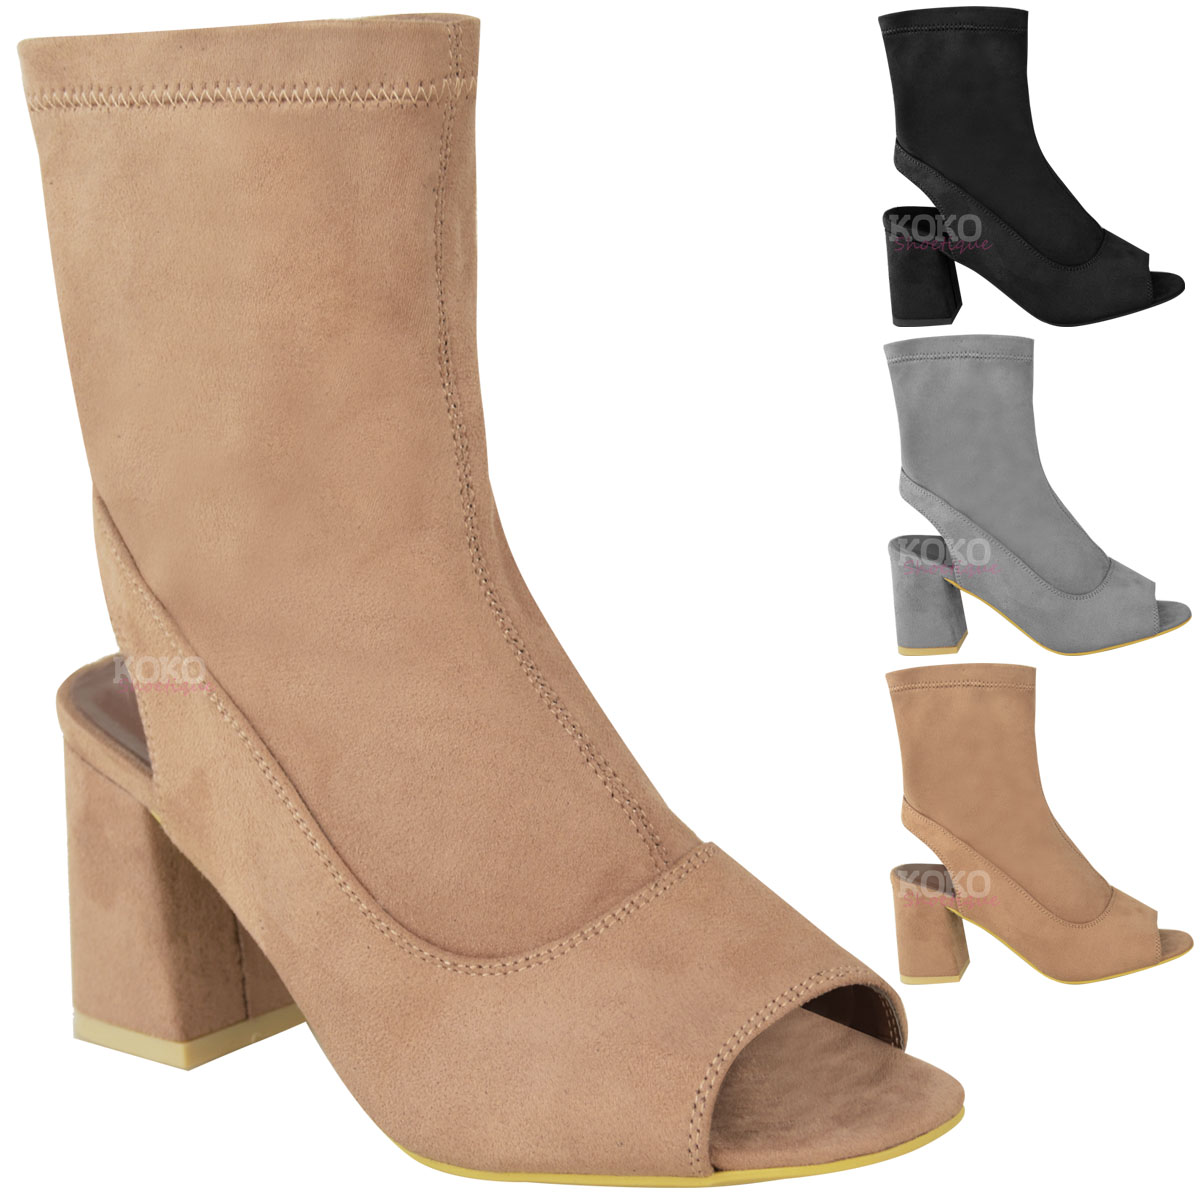 New Low Heel Boots Women With Perfect White Accent | Sobatapk.com